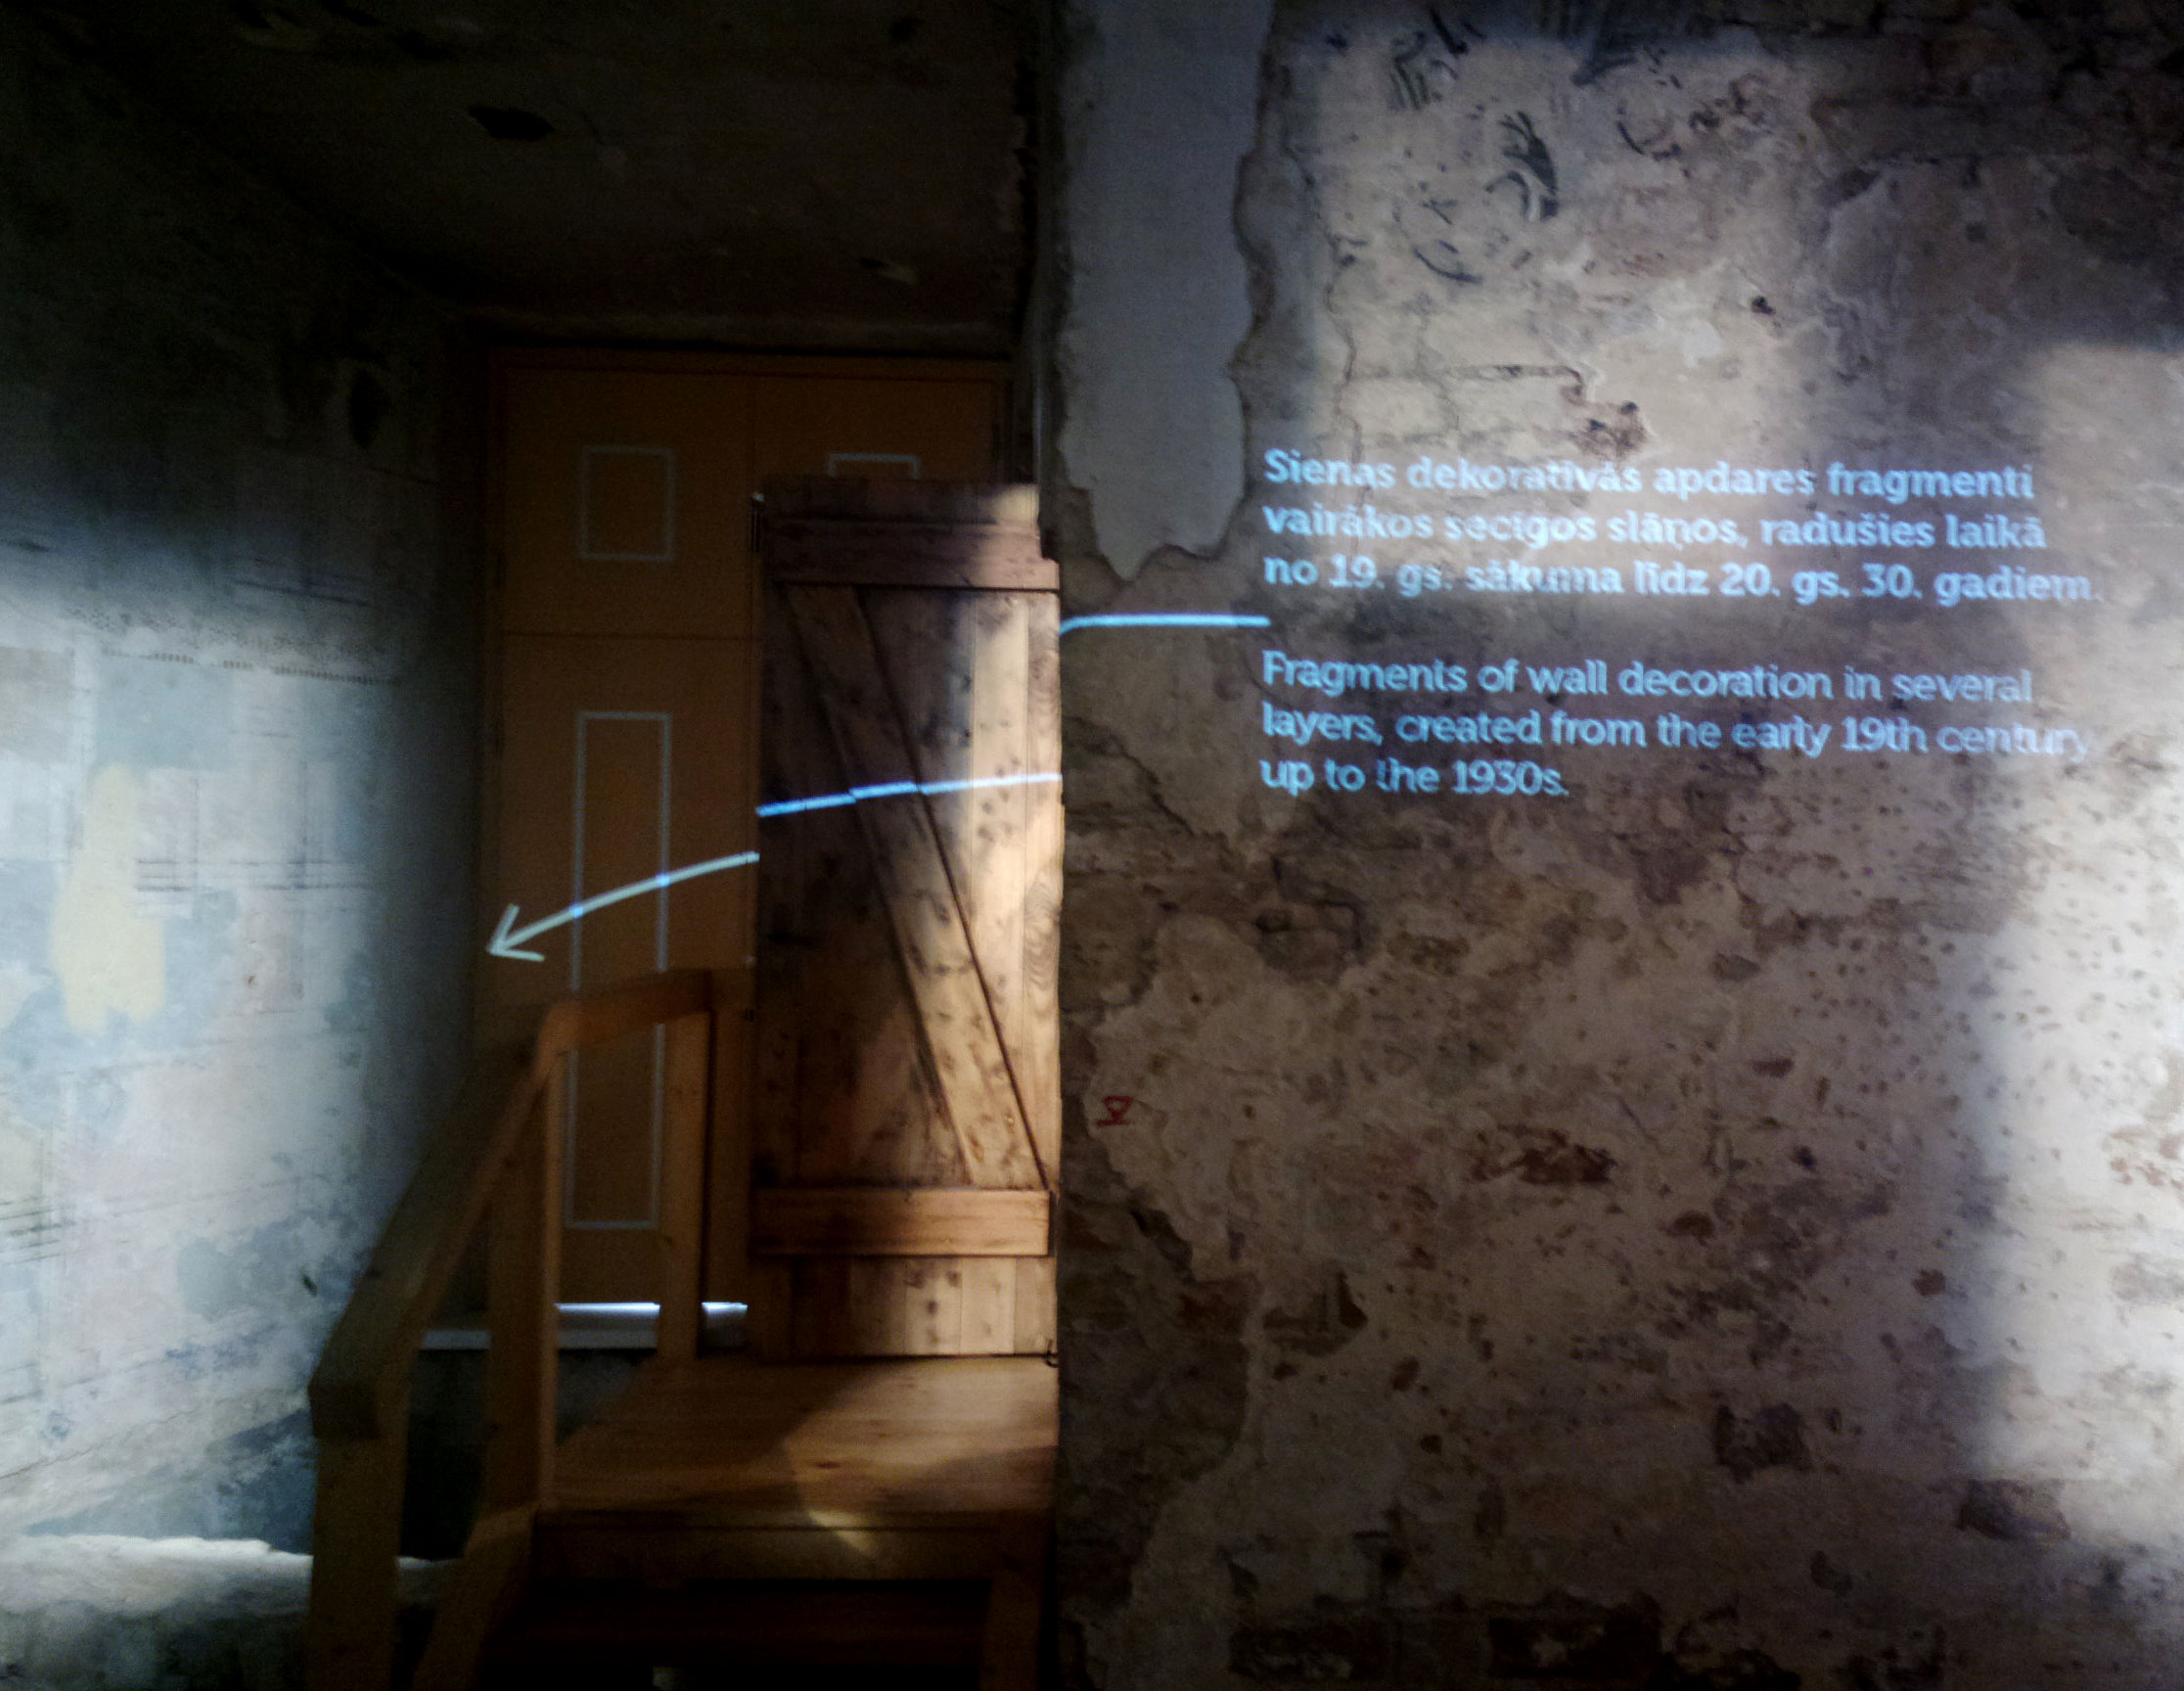 Light is also used to point out important parts in the museum.